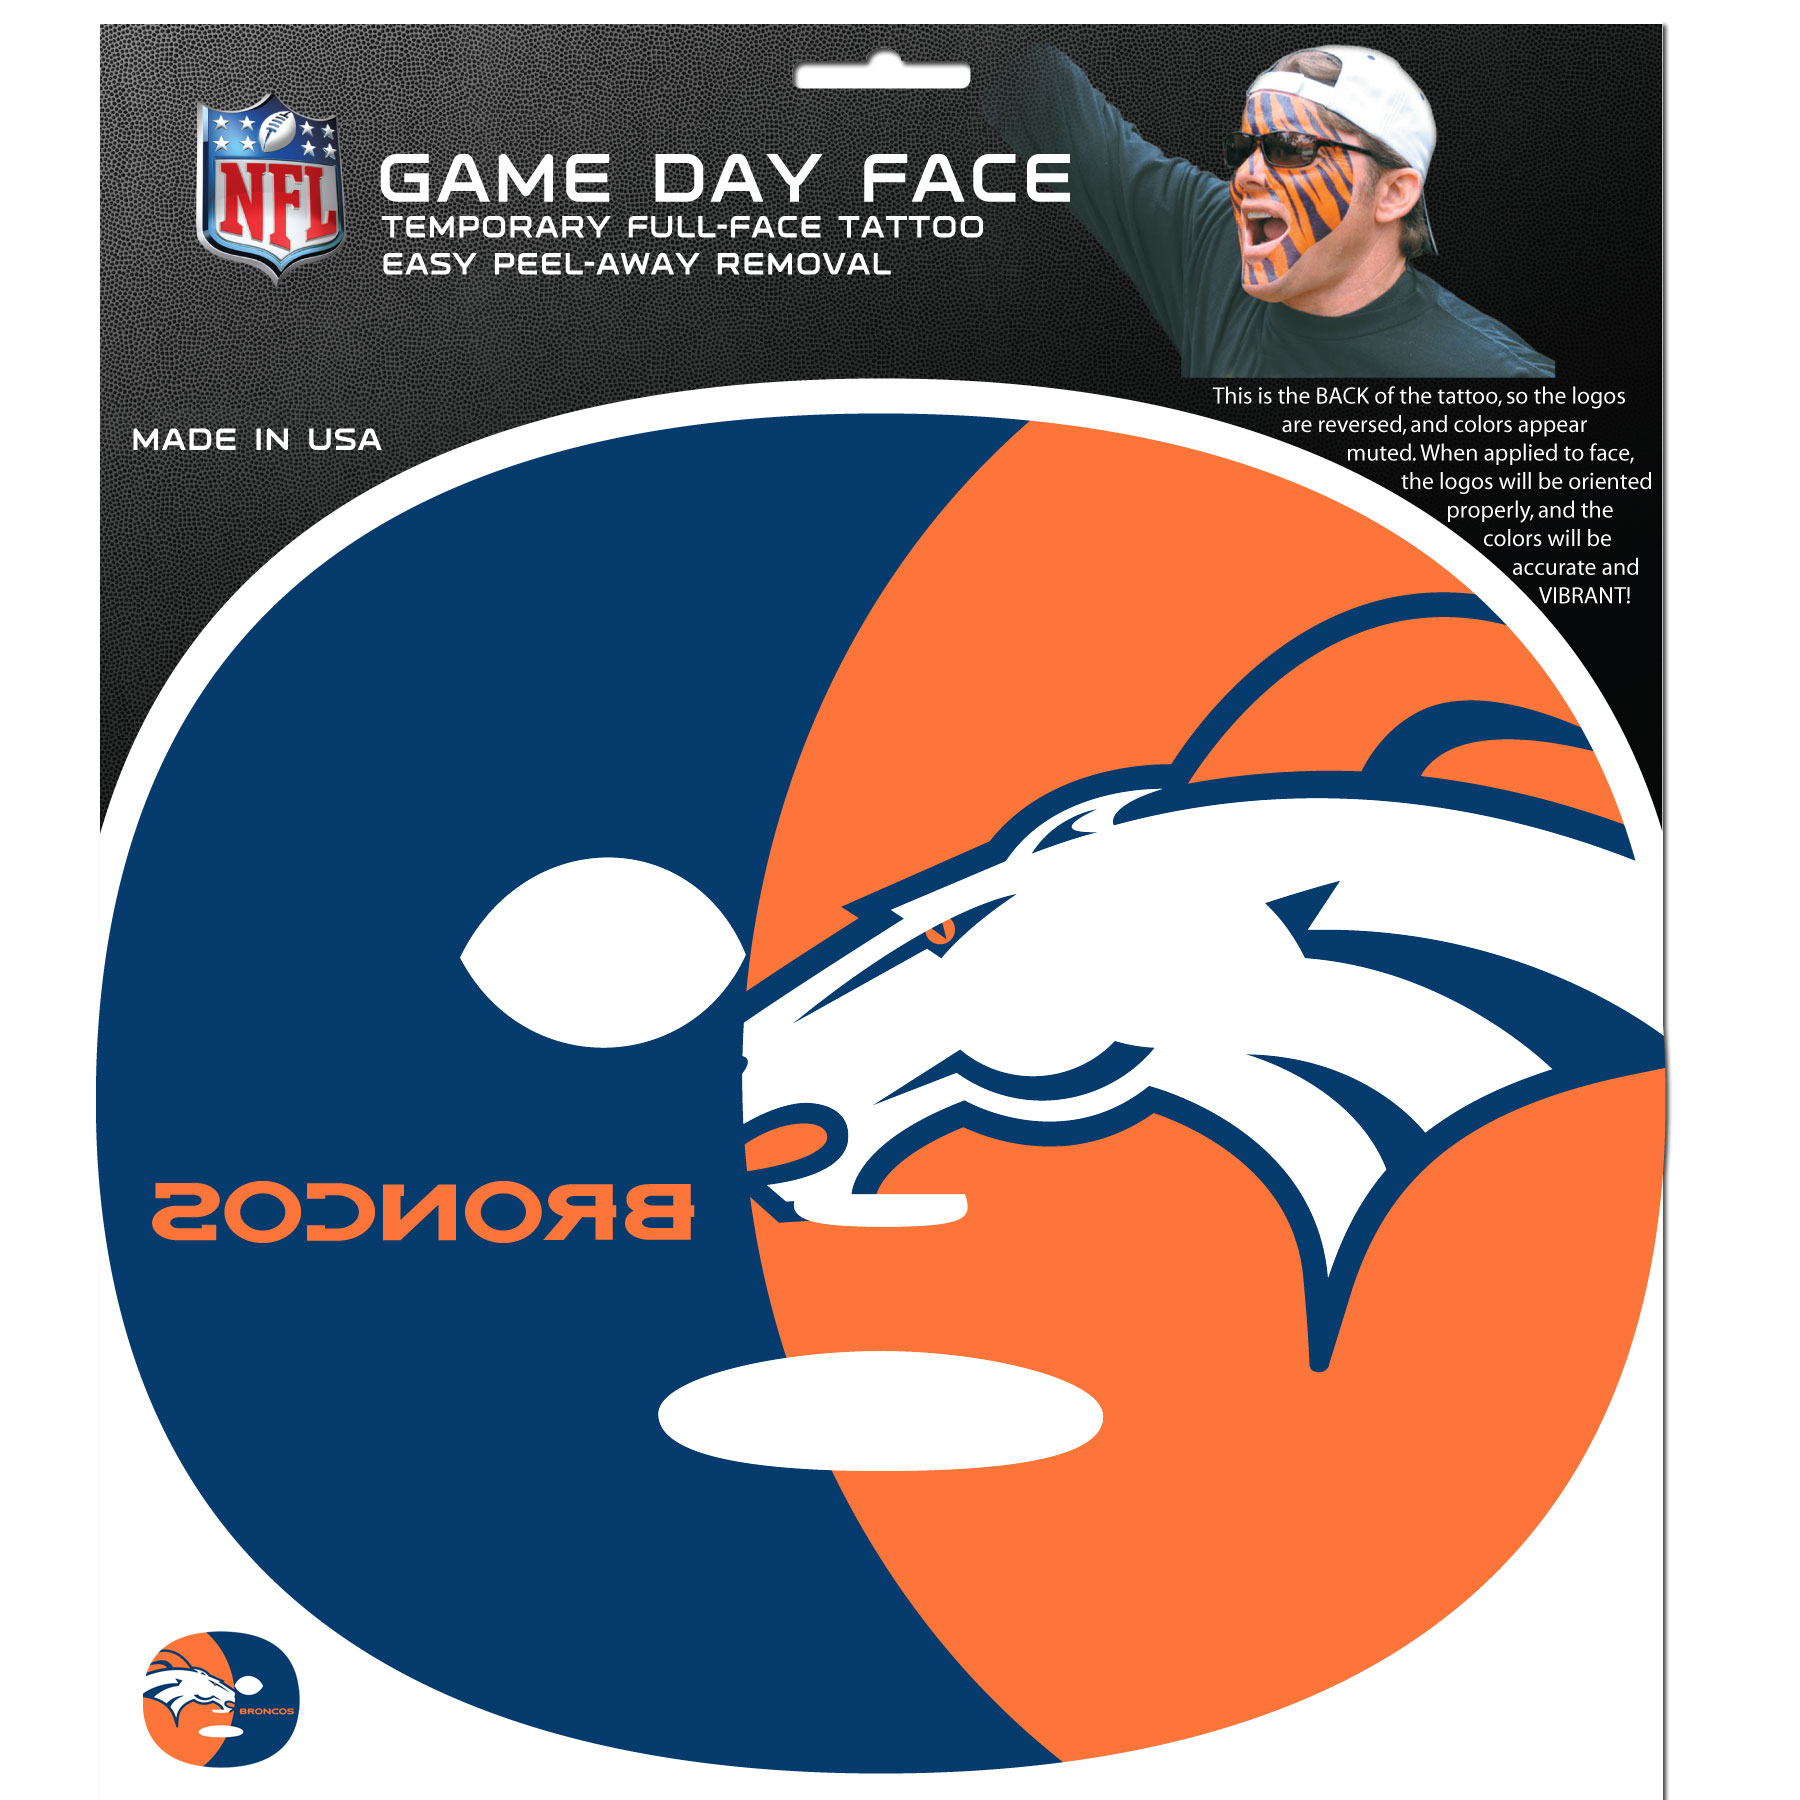 Denver Broncos Set of 8 Game Day Faces - No better way to show your team pride than by painting your face. Siskiyou's Game Day Face Temporary Tattoo isn't your typical face paint. It is a water based application that doesn't smudge, smear or sweat off while you're wearing it and easily peels off after you're done celebrating your team's big Win! The temporary tattoo is large enough to trim down to fit your face. Our Game Day Face Temporary Tattoo's are fun for fans of all ages. You may have seen our product before, these are the same Temporary Face Tattoos as pitched on ABC's Shark Tank.